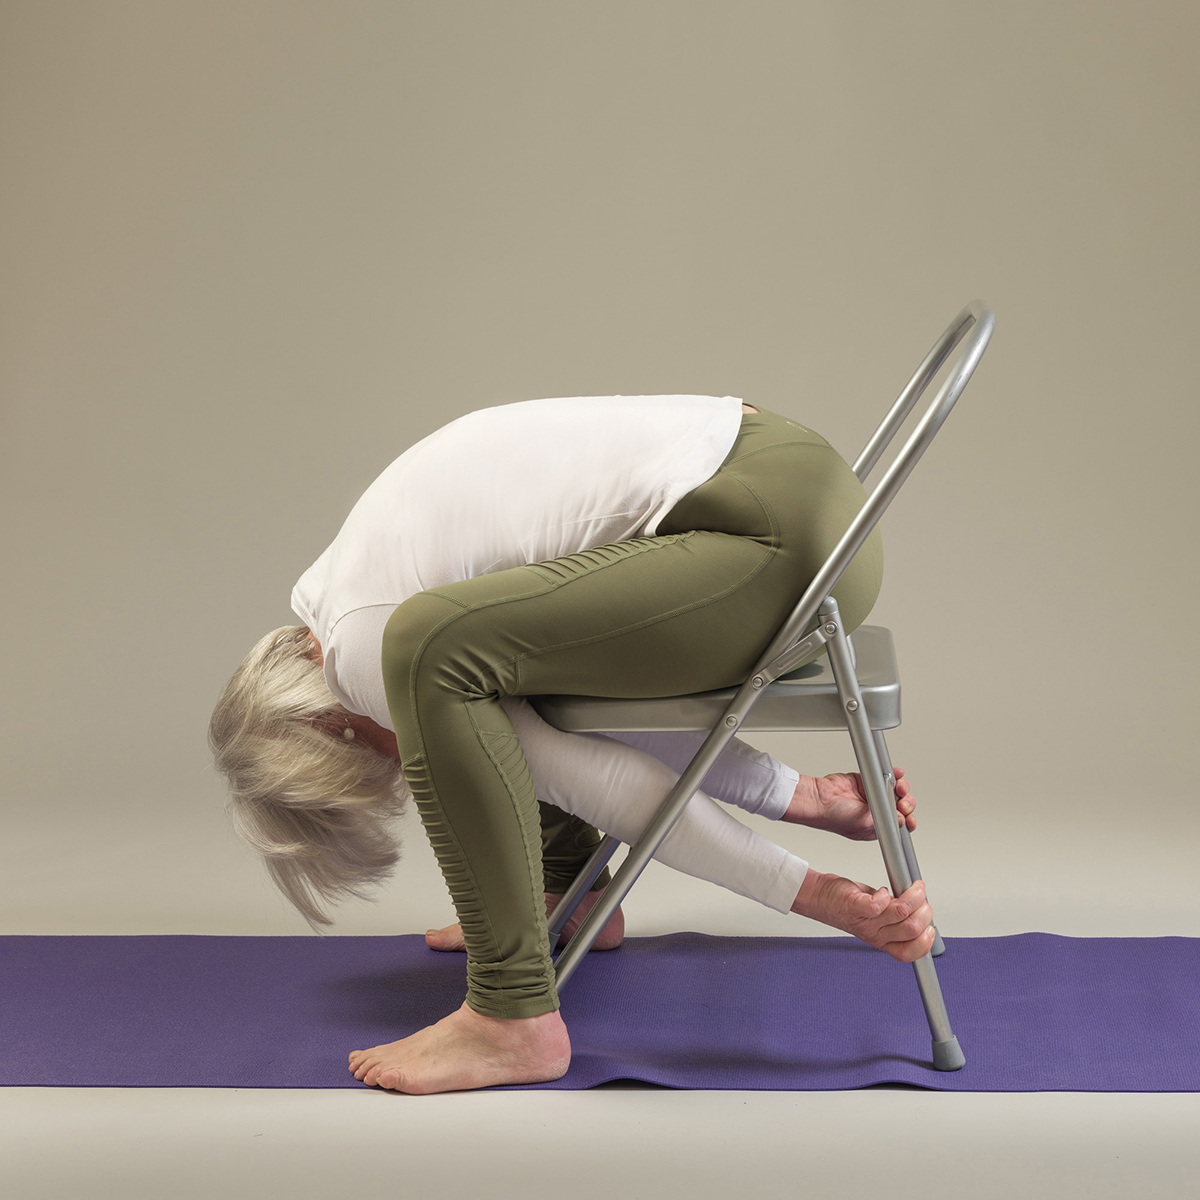 """yoga-chair-relaxing-pose """"width ="""" 1200 """"height ="""" 1200 """"srcset ="""" https://www.yogamatters.com/blog/wp-content/uploads/2019/03/ yoga-chair-relaxing-pose.jpg 1200w, https://www.yogamatters.com/blog/wp-content/uploads/2019/03/yoga-chair-relaxing-pose-300x300.jpg 300w, https: // www.yogamatters.com/blog/wp-content/uploads/2019/03/yoga-chair-relaxing-pose-1024x1024.jpg 1024w, https://www.yogamatters.com/blog/wp-content/uploads/2019 /03/yoga-chair-relaxing-pose-60x60.jpg 60w, https://www.yogamatters.com/blog/wp-content/uploads/2019/03/yoga-chair-relaxing-pose-32x32.jpg 32w , https://www.yogamatters.com/blog/wp-content/uploads/2019/03/yoga-chair-relaxing-pose-50x50.jpg 50w, https://www.yogamatters.com/blog/wp- contenu / uploads / 2019/03 / yoga-chair-relaxing-pose -64x64.jpg 64w, https://www.yogamatters.com/blog/wp-content/uploads/2019/03/yoga-chair-relaxing-pose-96x96.jpg 96w, https://www.yogamatters.com /blog/wp-content/uploads/2019/03/yoga-chair-relaxing-pose-128x128.jpg 128w """"values ="""" (max-width: 1200px) 100vw, 1200px """"/> </span></noscript></h2><h2><b><span data-contrast="""